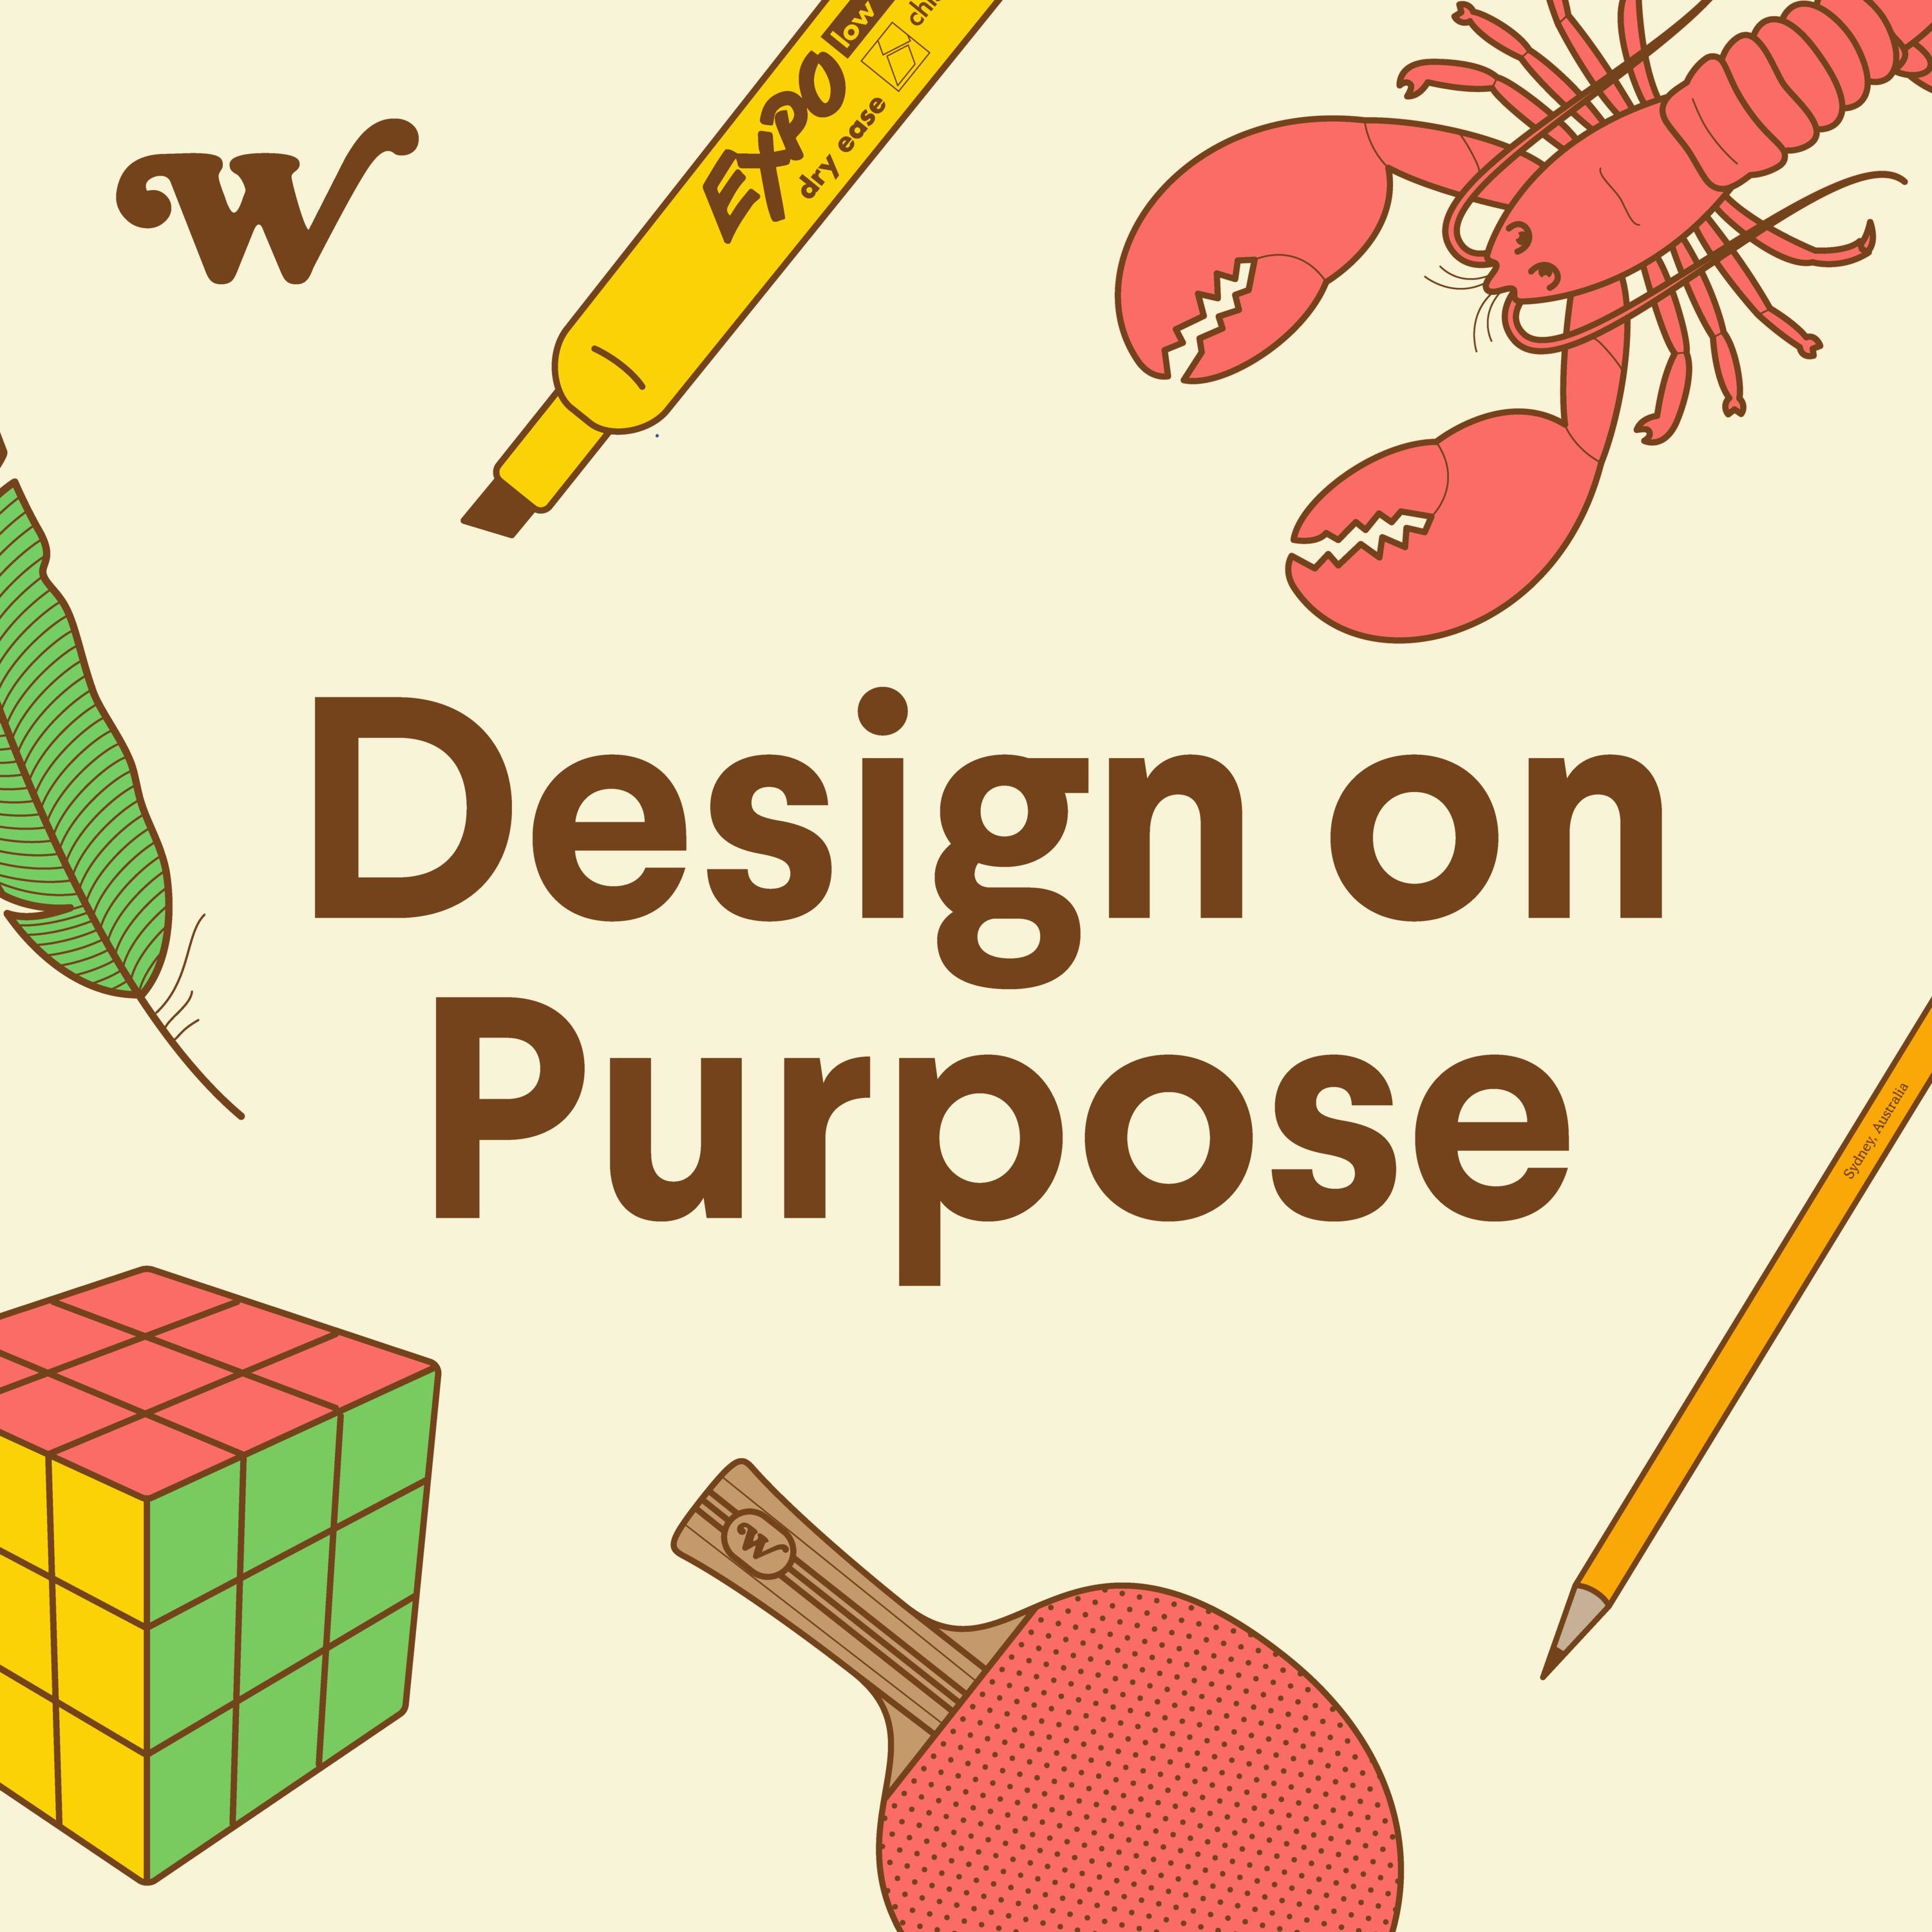 Design On Purpose: A Year in Review [190123]